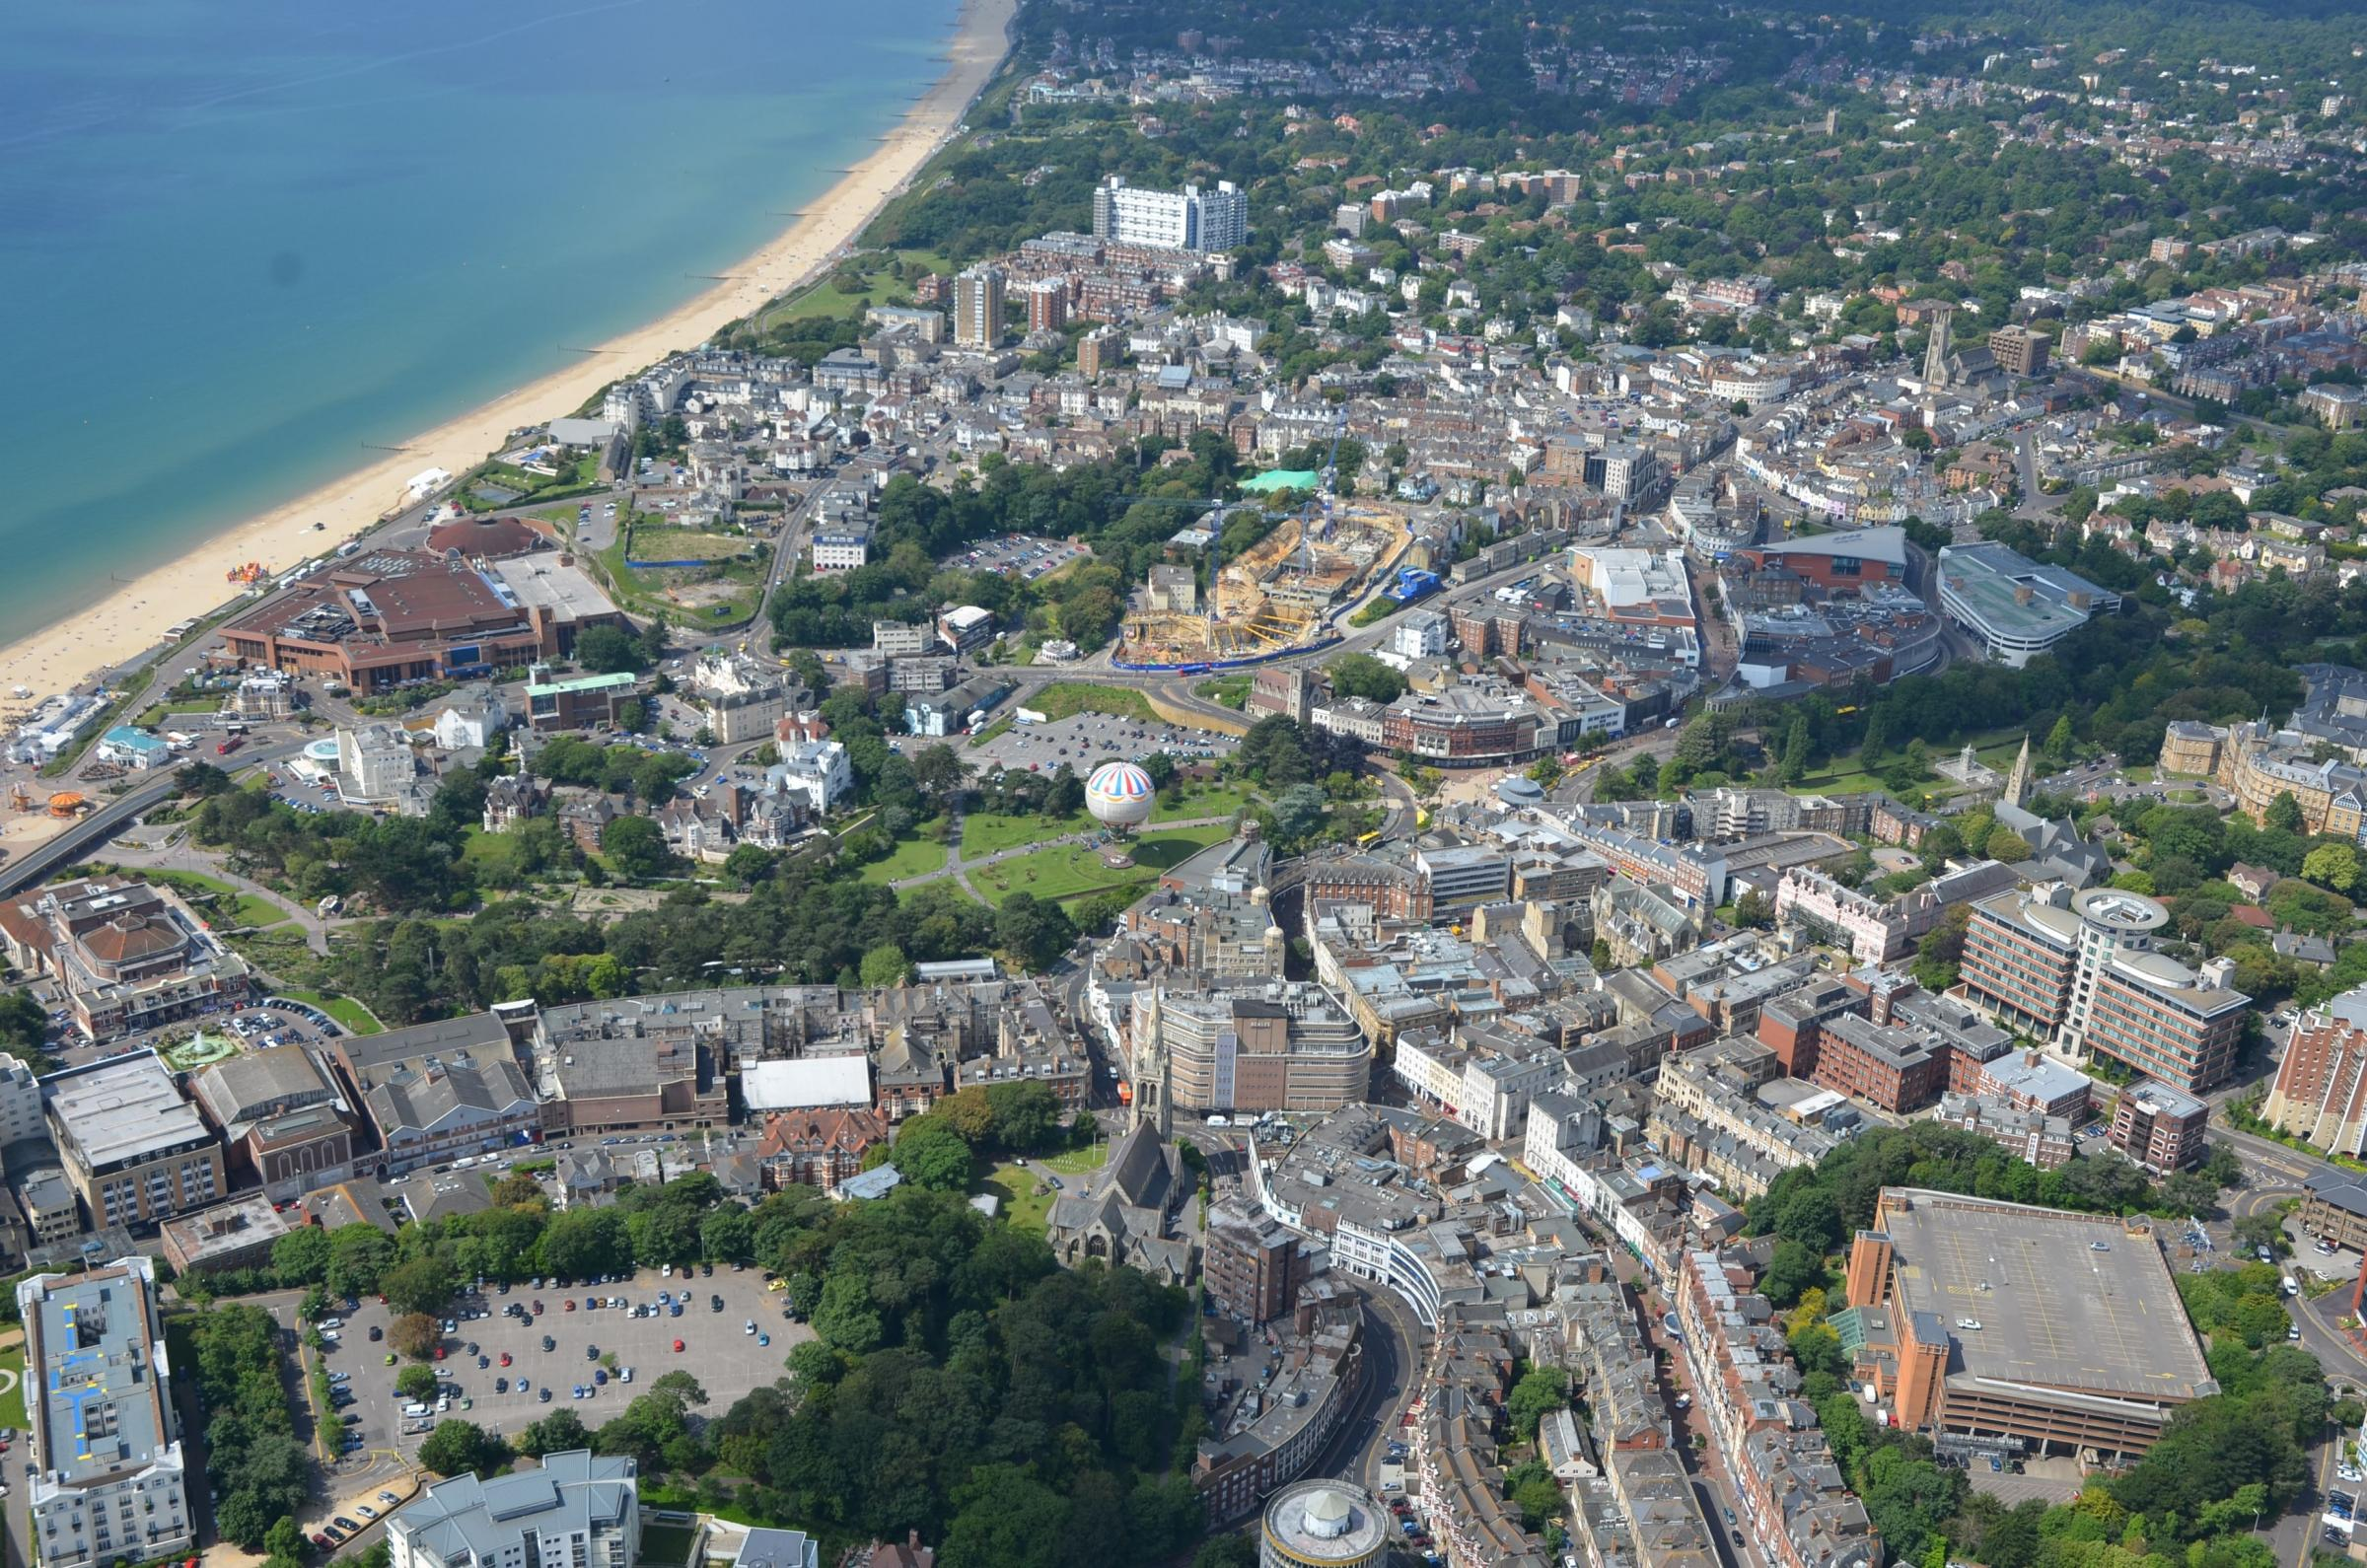 Hotels have signed up to a special Watch scheme. Image courtesy of Bournemouth Helicopters and Wordcaster Media and Public Relations